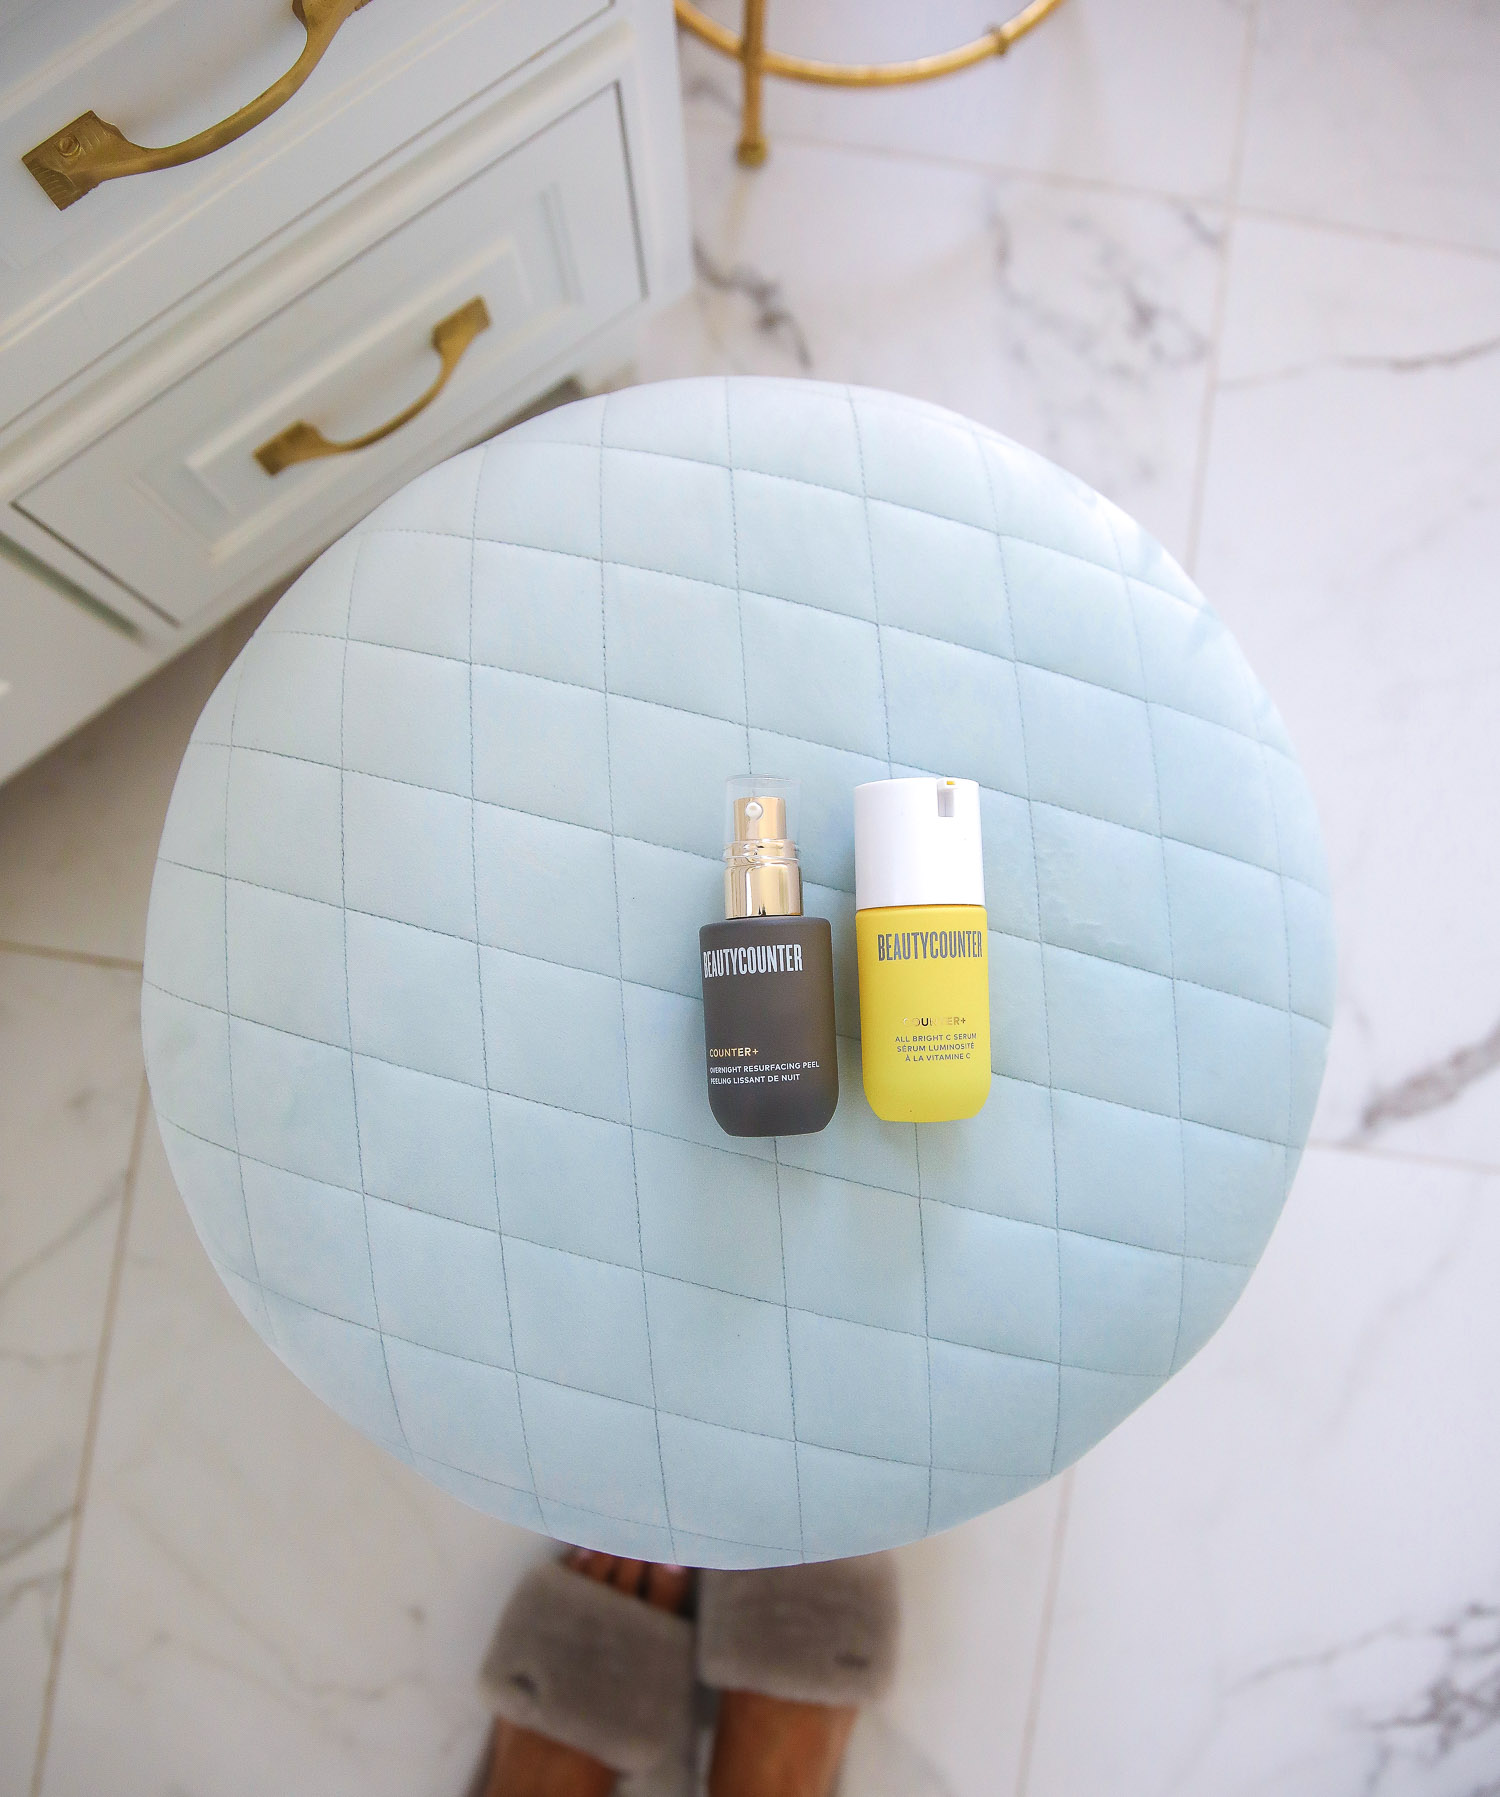 beauty counter review vitamin C, Beauty Counter Sephora overnight resurfacing gel, emily ann gemma | Beautycounter Products by popular US beauty blog, The Sweetest Thing: image of Beautycounter Counter+ Overnight Resurfacing Peel and Beautycounter Counter+ All Bright C Serum.